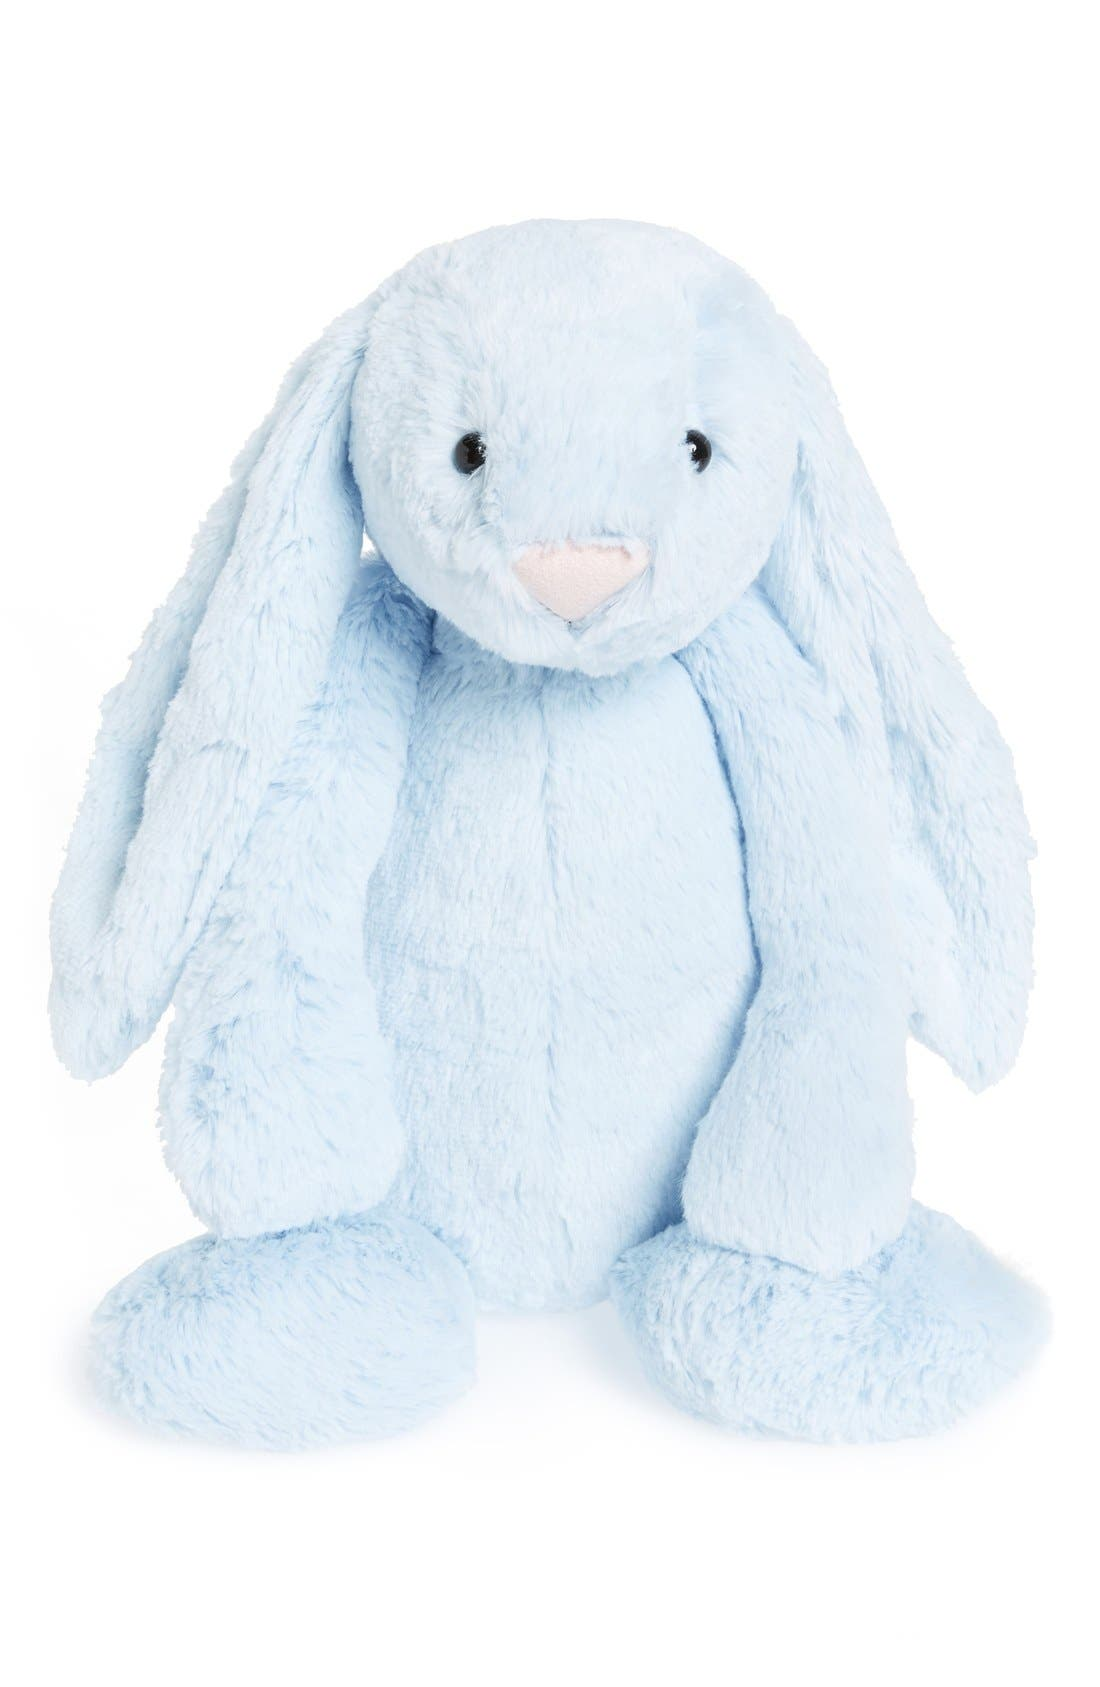 Main Image - Jellycat 'Bashful Blue Bunny' Stuffed Animal